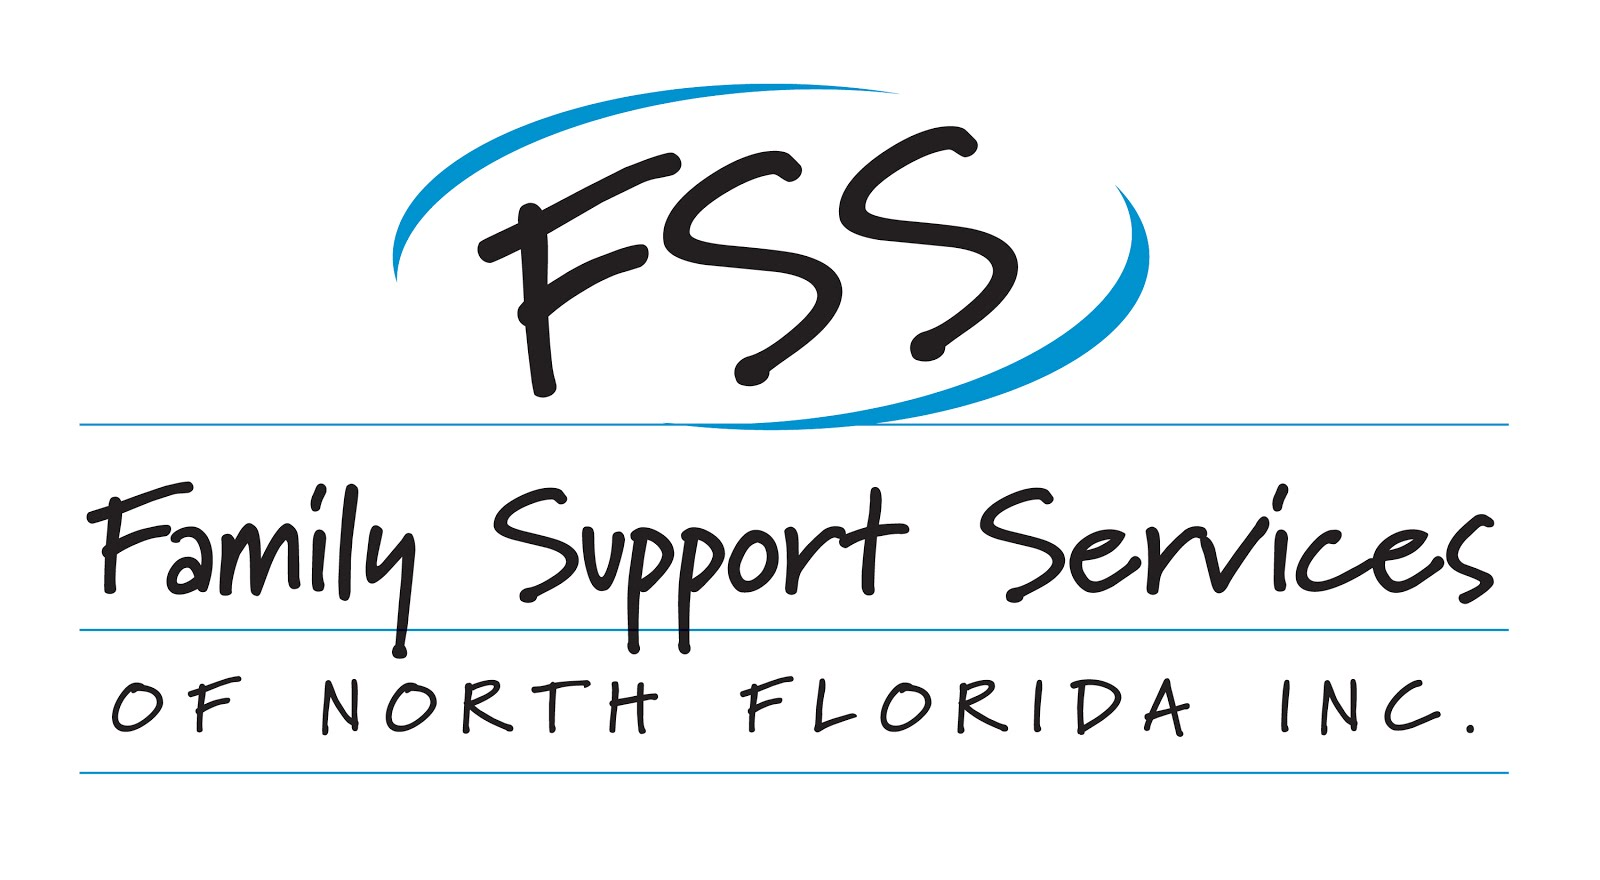 Family Support Services of North Florida